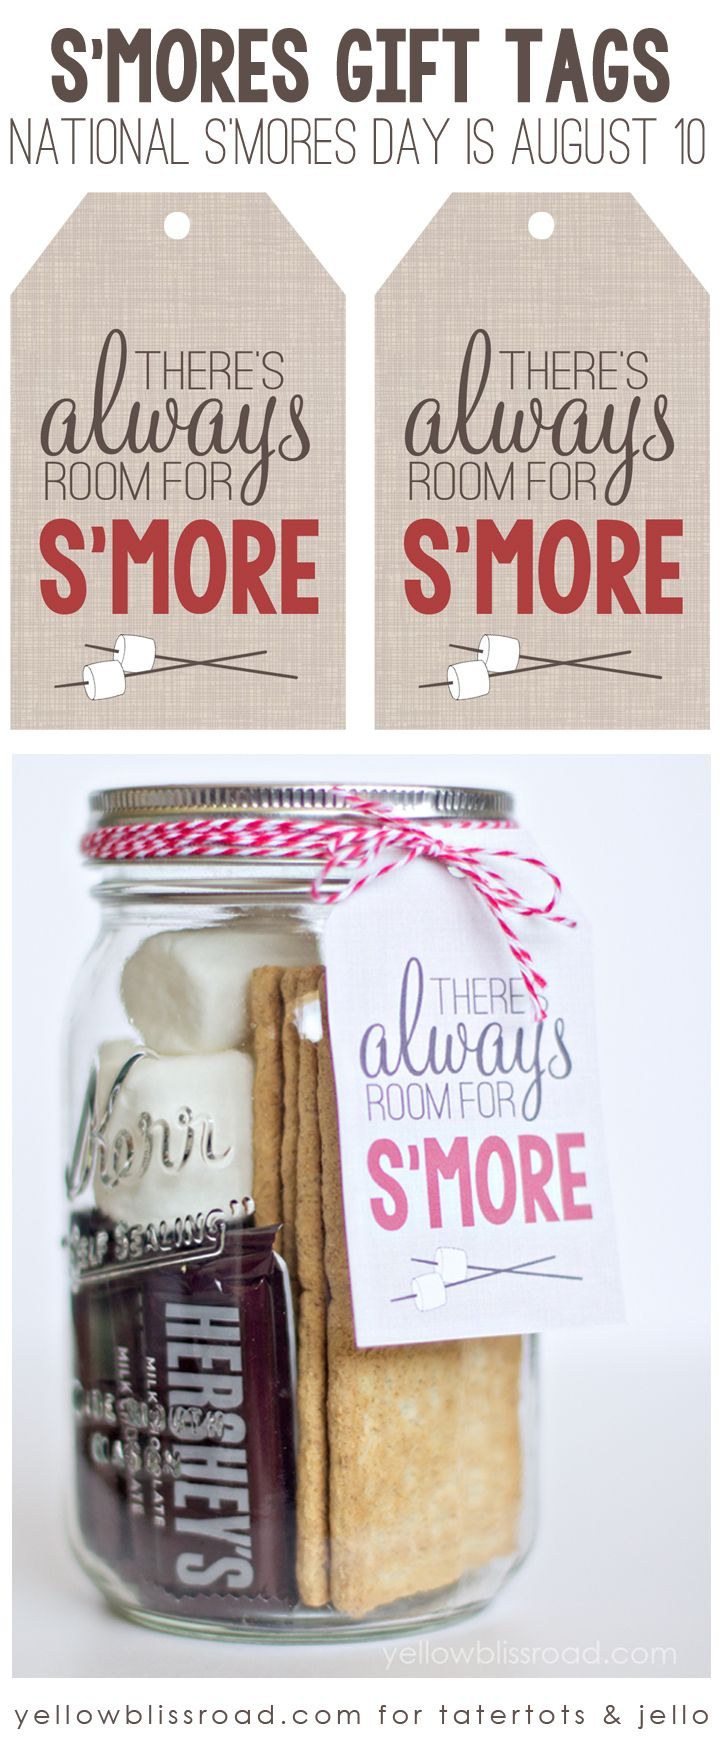 There's always room for s'more (tags) - S'More day is Aug 10th!